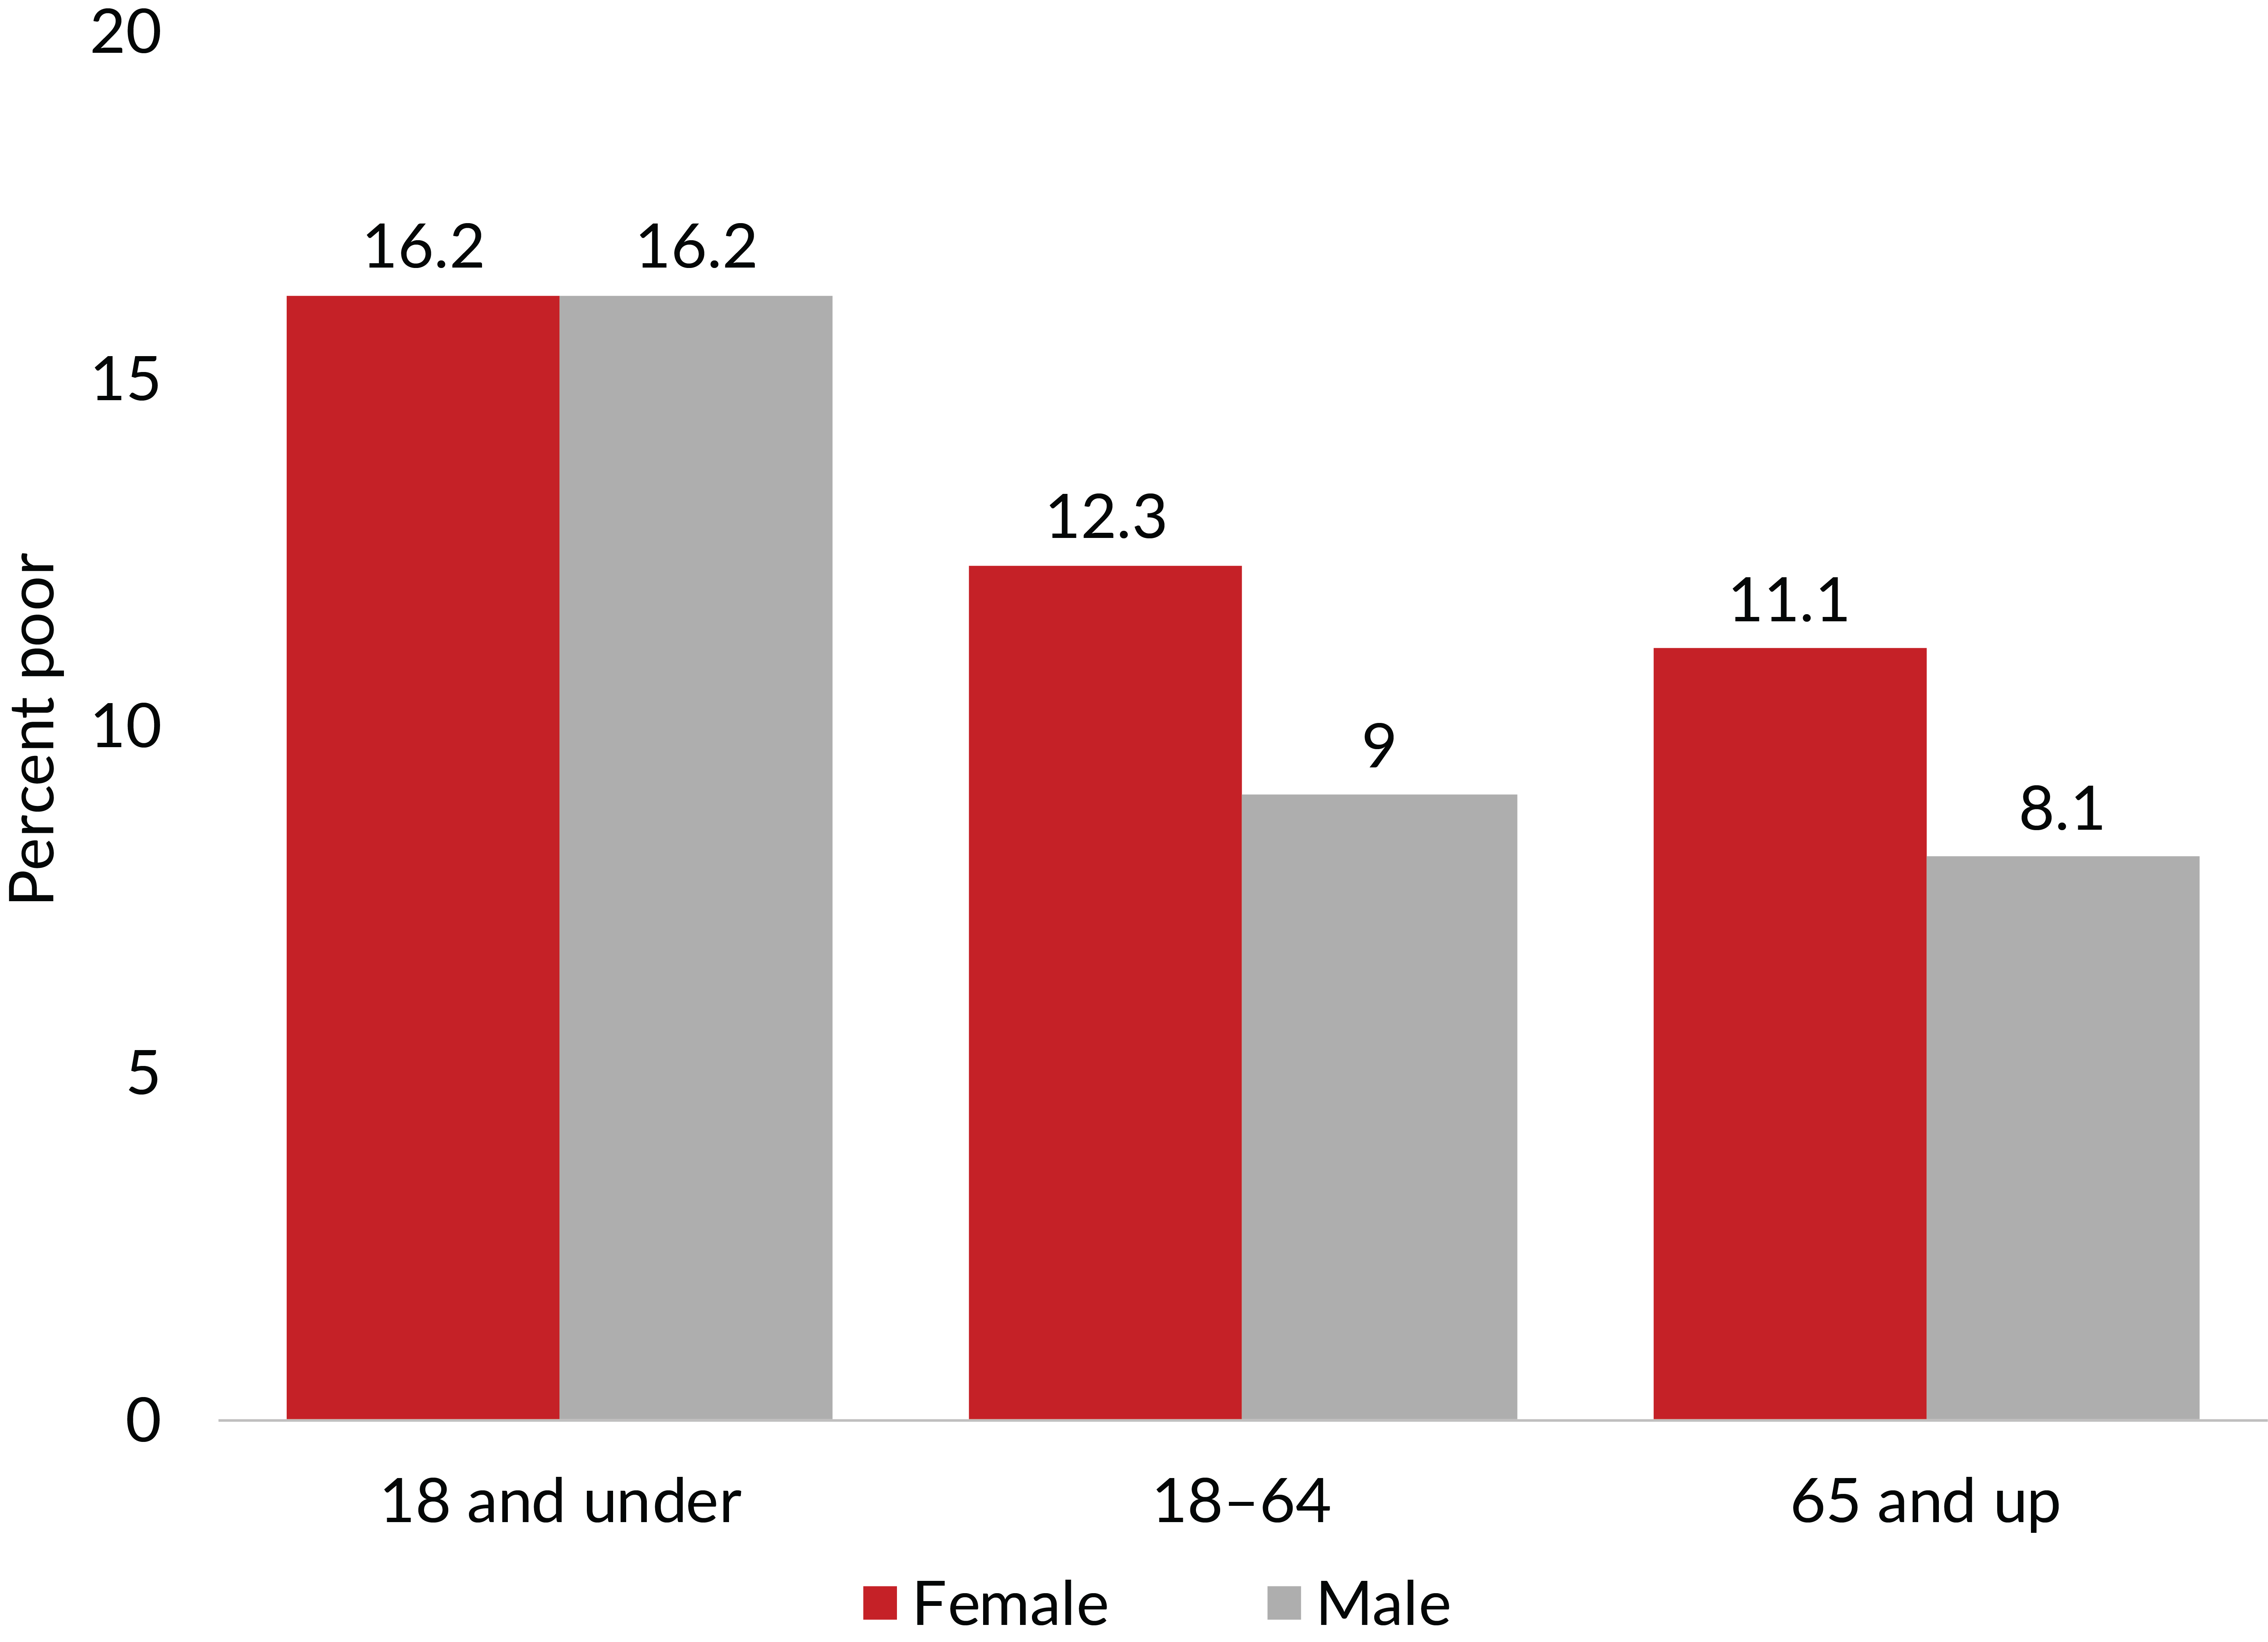 Figure 3. Poverty rates differed most between sexes among adults in 2018. Source: U.S. Census Bureau, Income and Poverty in the United States: 2018. Figure 10, p.15.